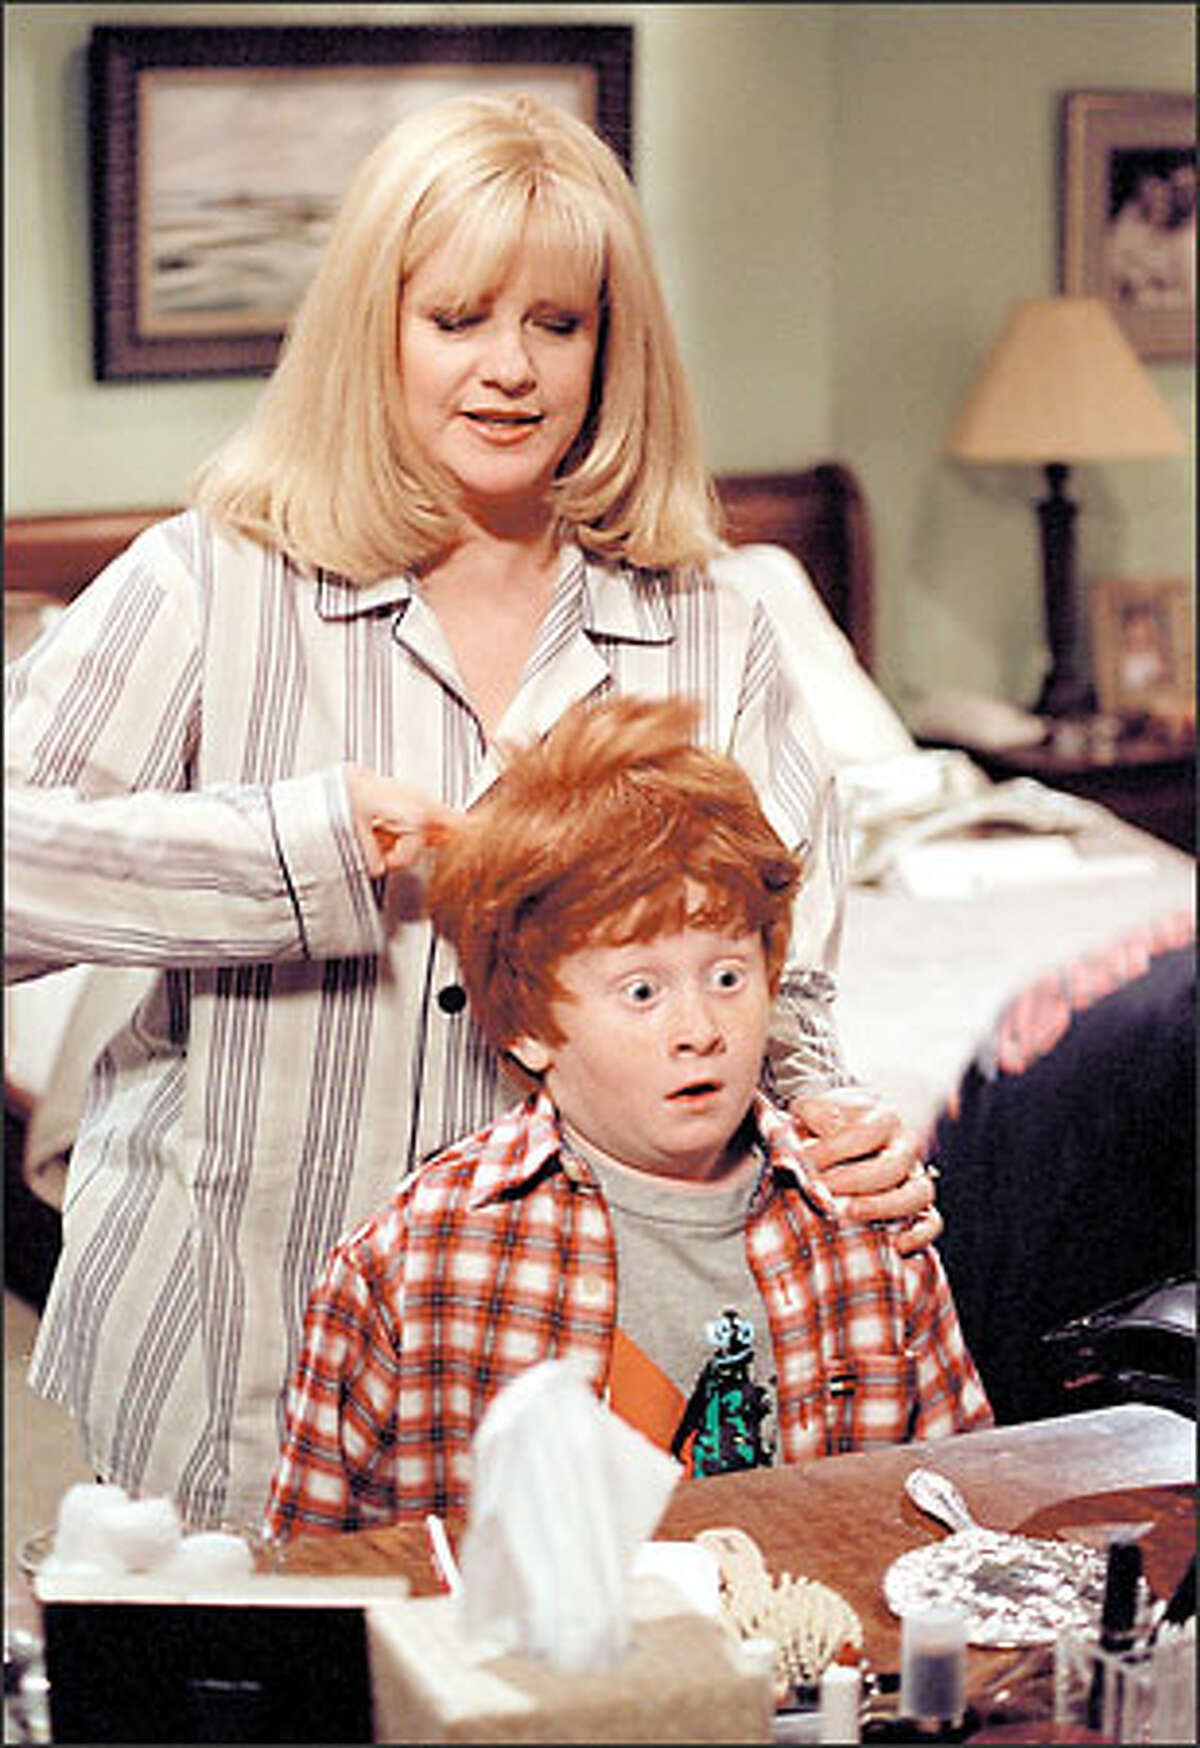 """In """"Life With Bonnie,"""" Bonnie Molloy (Bonnie Hunt), shown with son Charlie (Charlie Stewart) is a woman who juggles the roles of wife, mother and host of the local morning talk show, """"Morning Chicago."""" In the series, Hunt's improvisational skills shine during unscripted interviews with real-life guests (non-actors) of the talk show."""